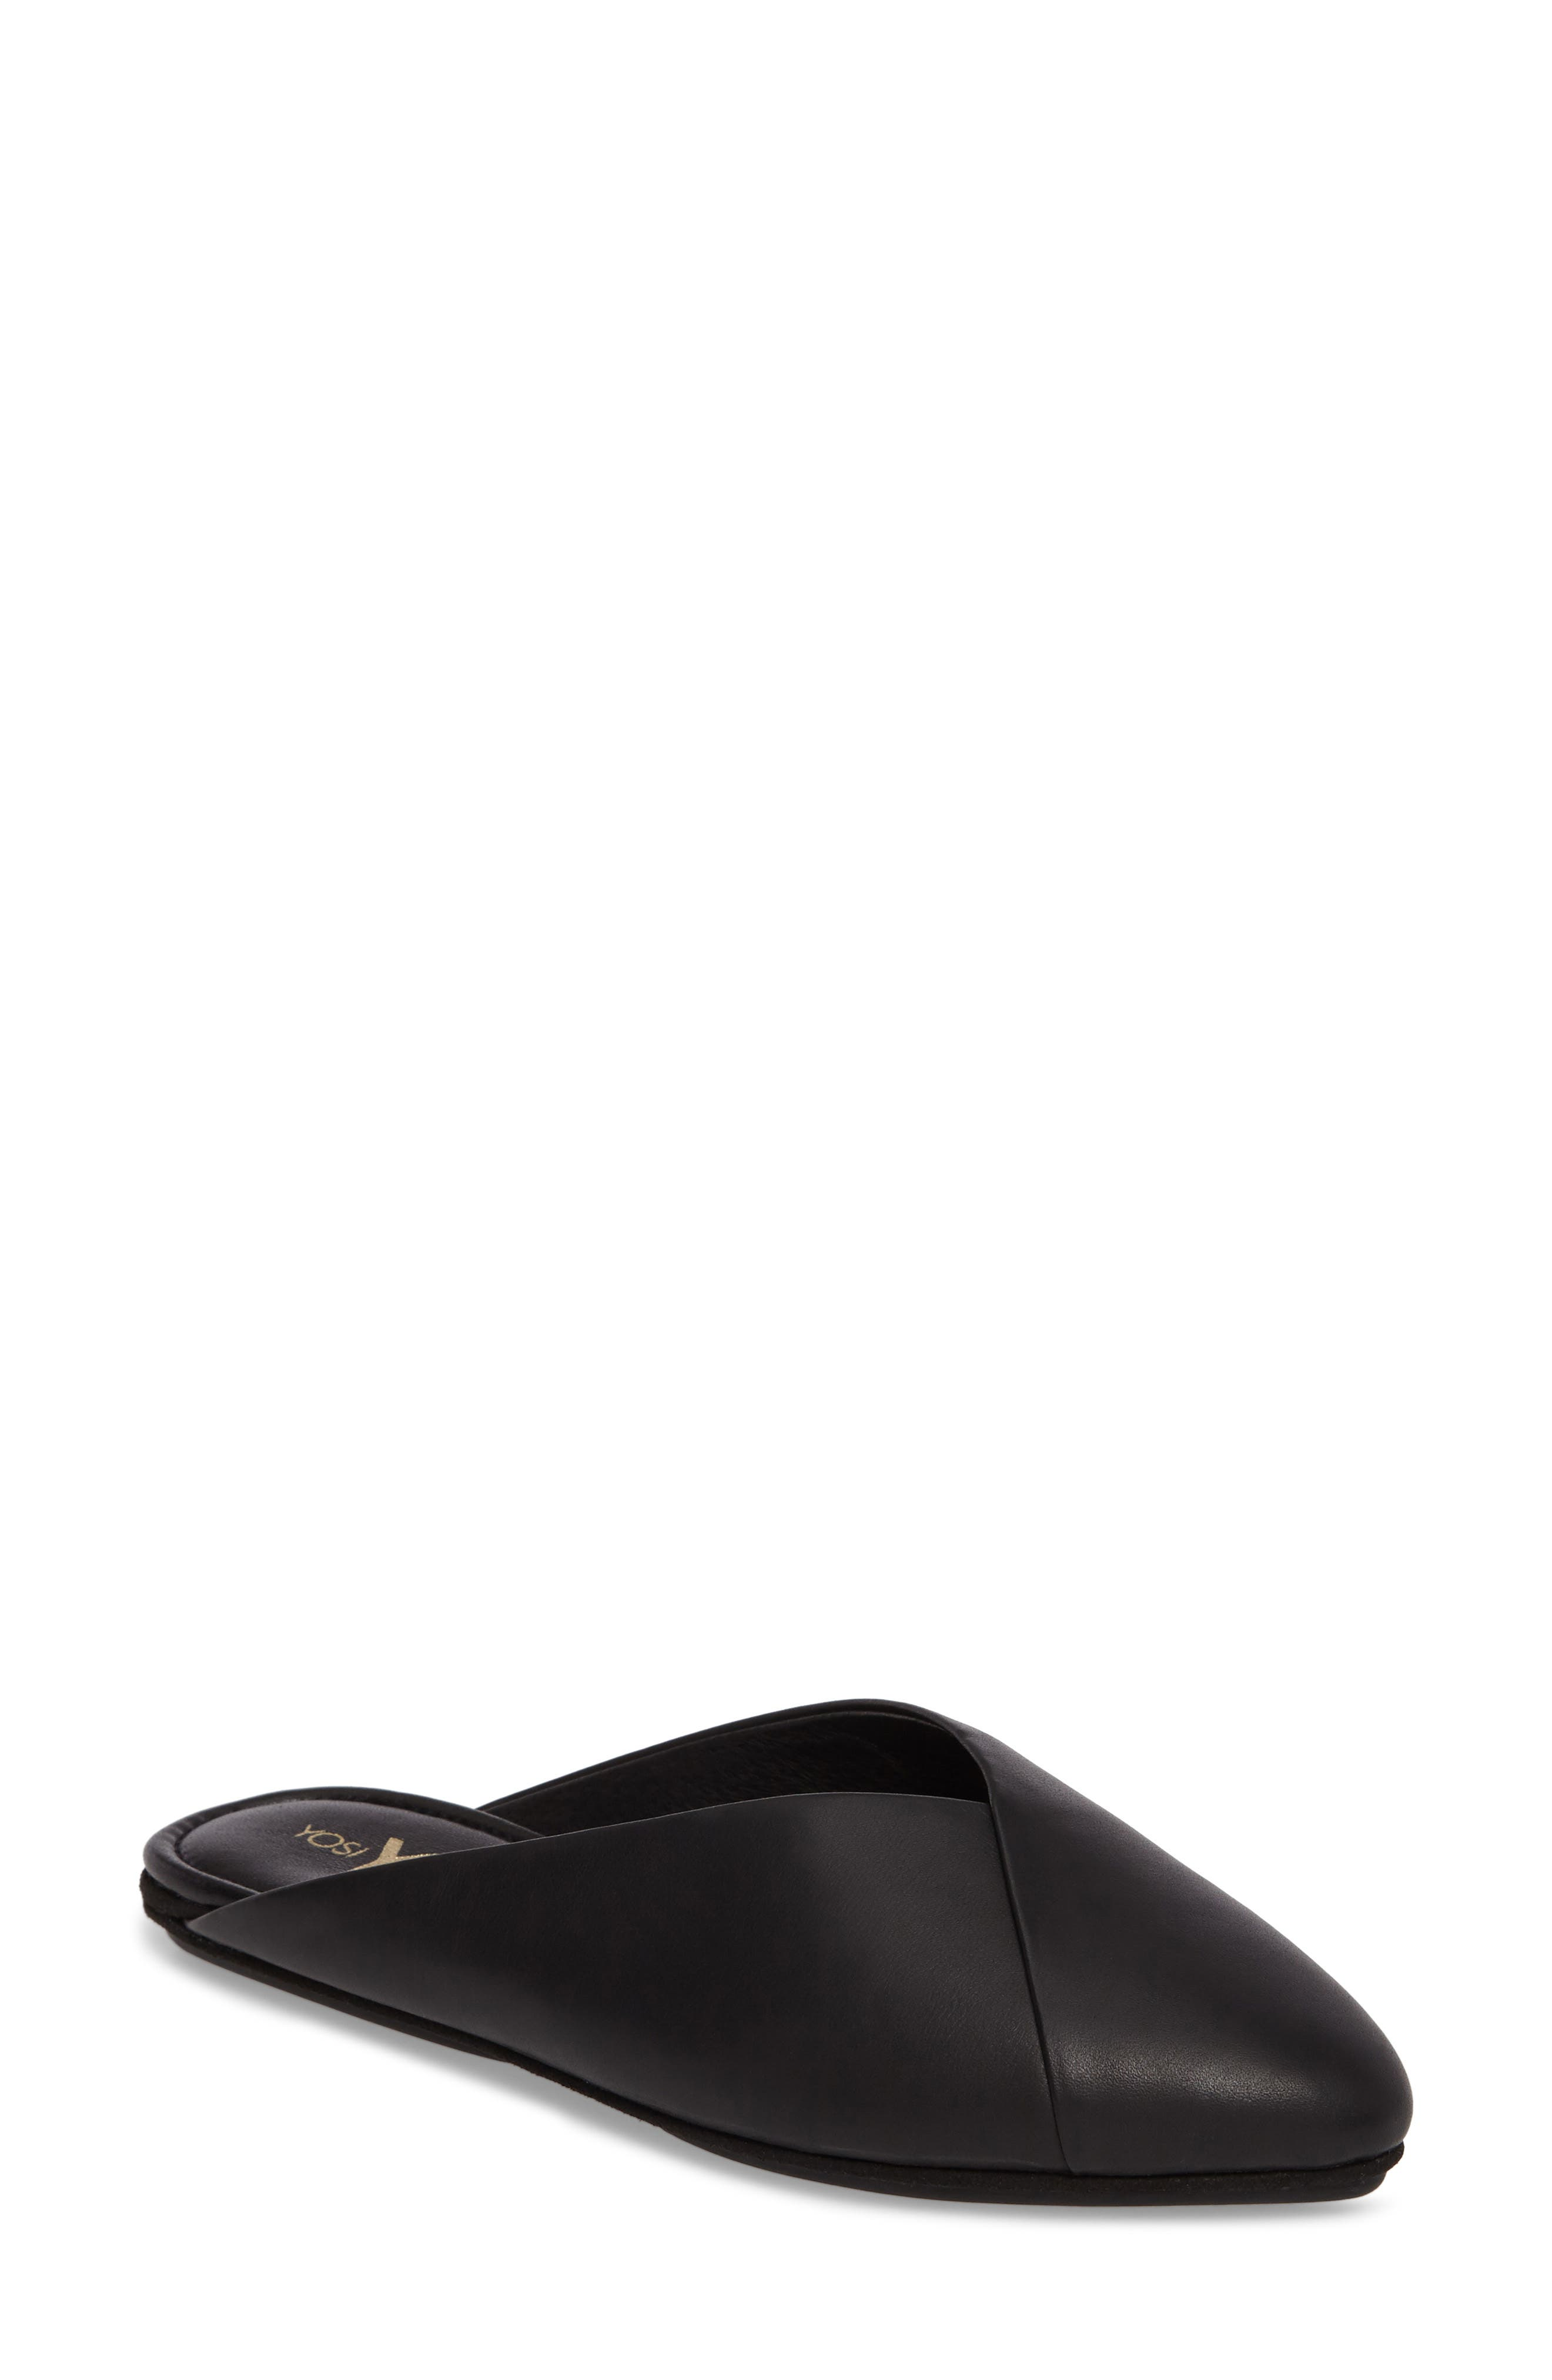 Valentina Slide Mule,                             Main thumbnail 1, color,                             001